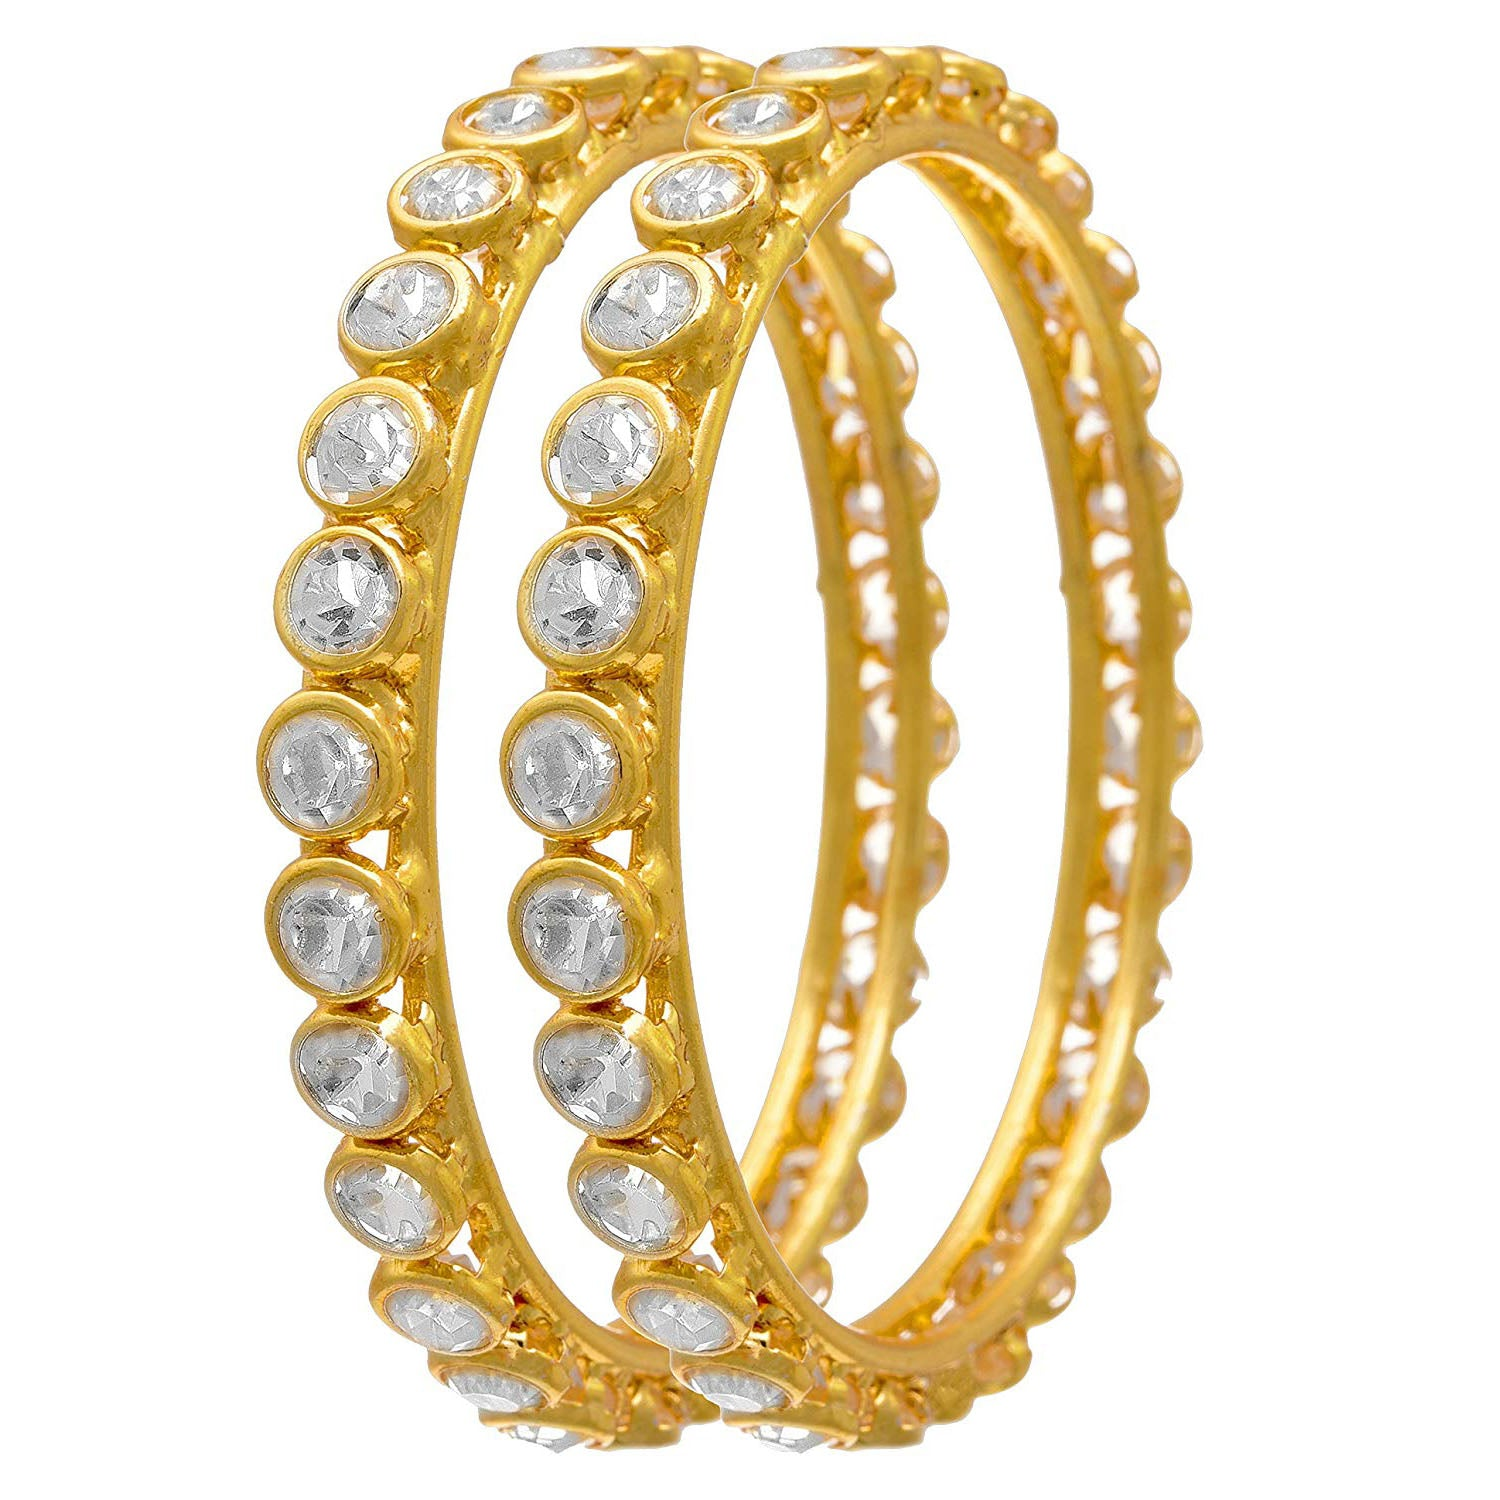 Ethnic Fusion Cz American Diamond Designer Bangle for Women & Girls